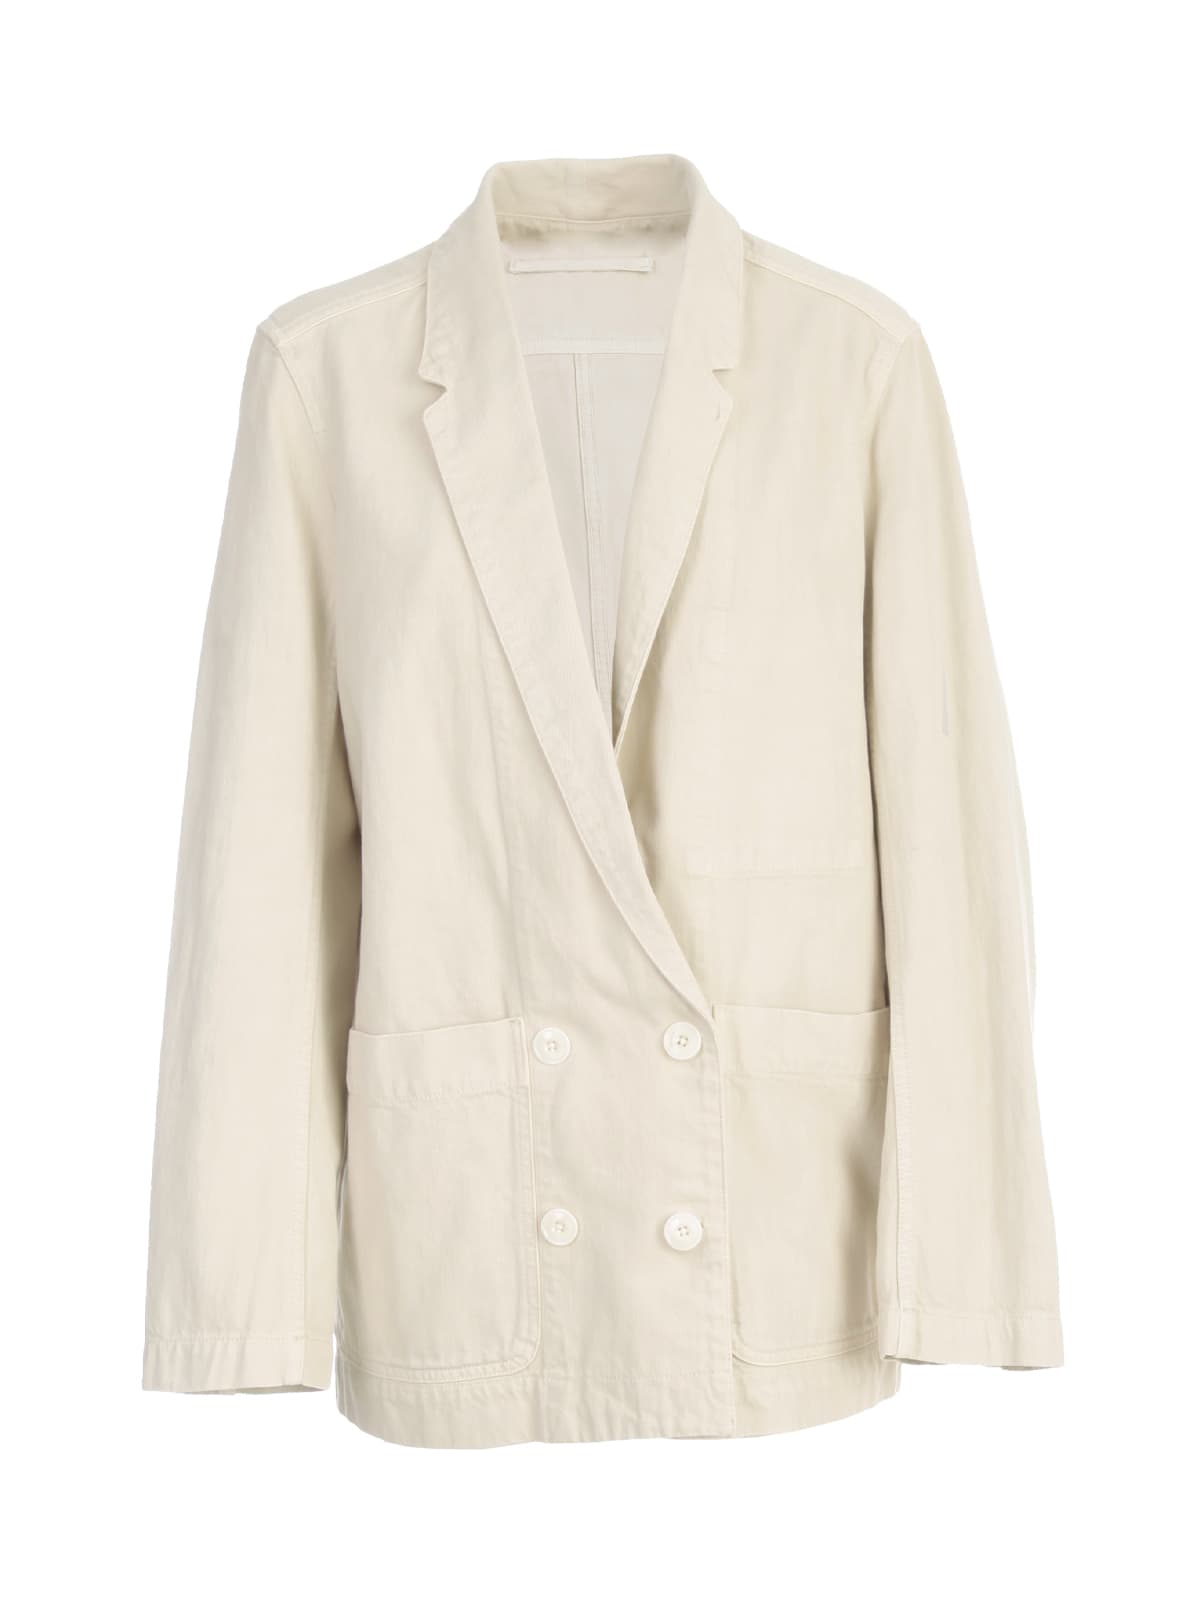 Lemaire Double Breasted Jacket In Lt Pelican Grey